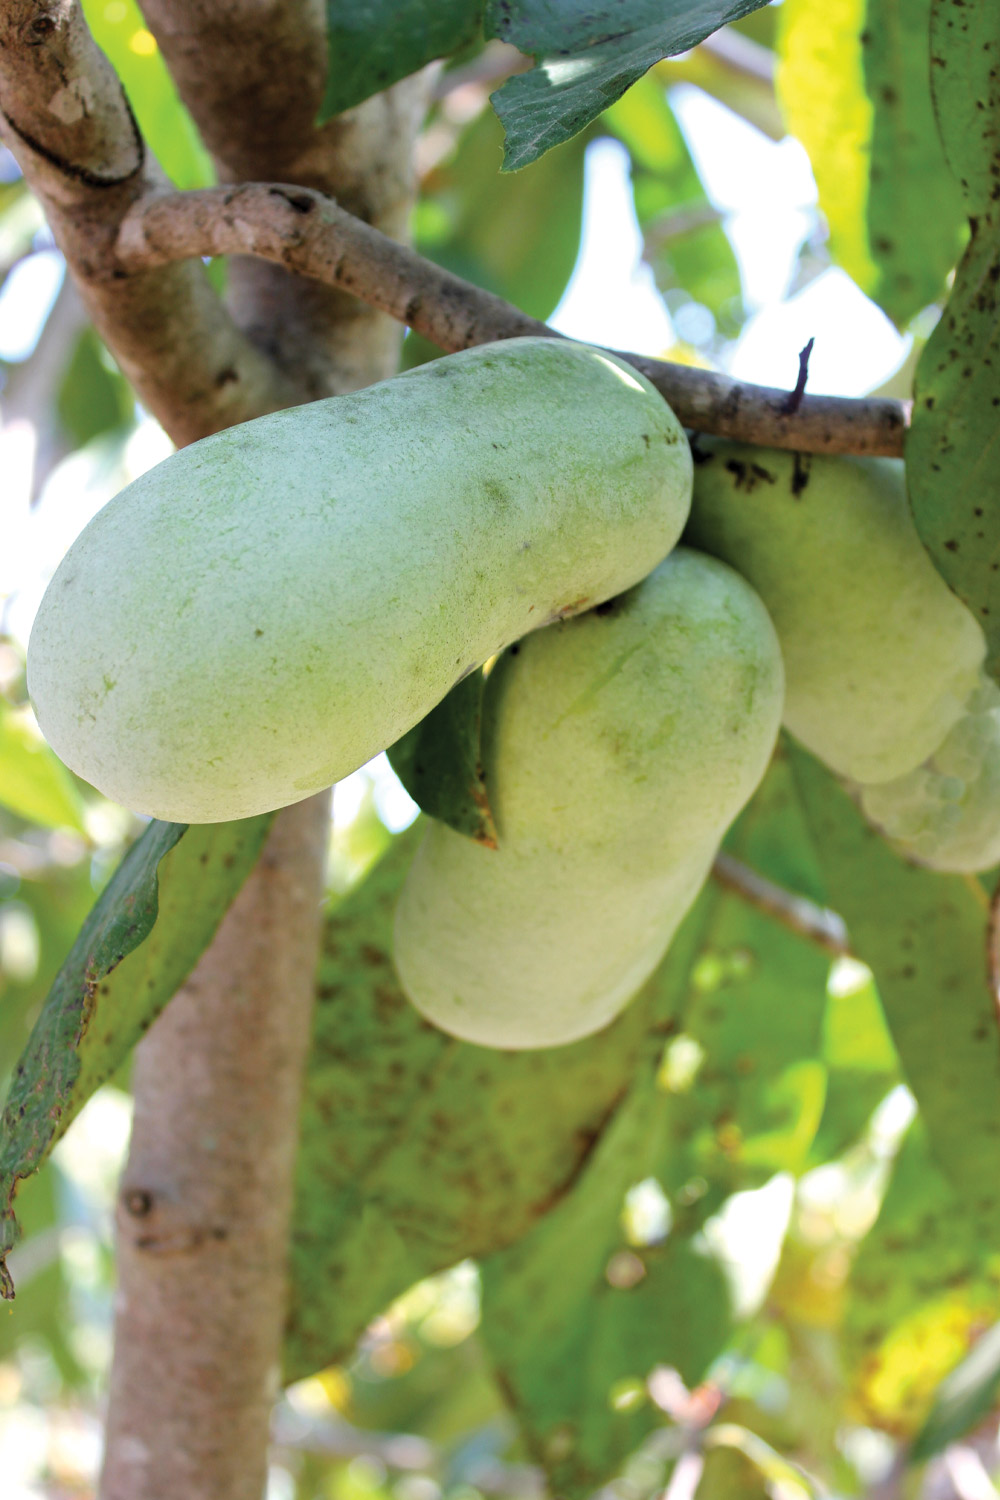 Cluster of pawpaws on the tree